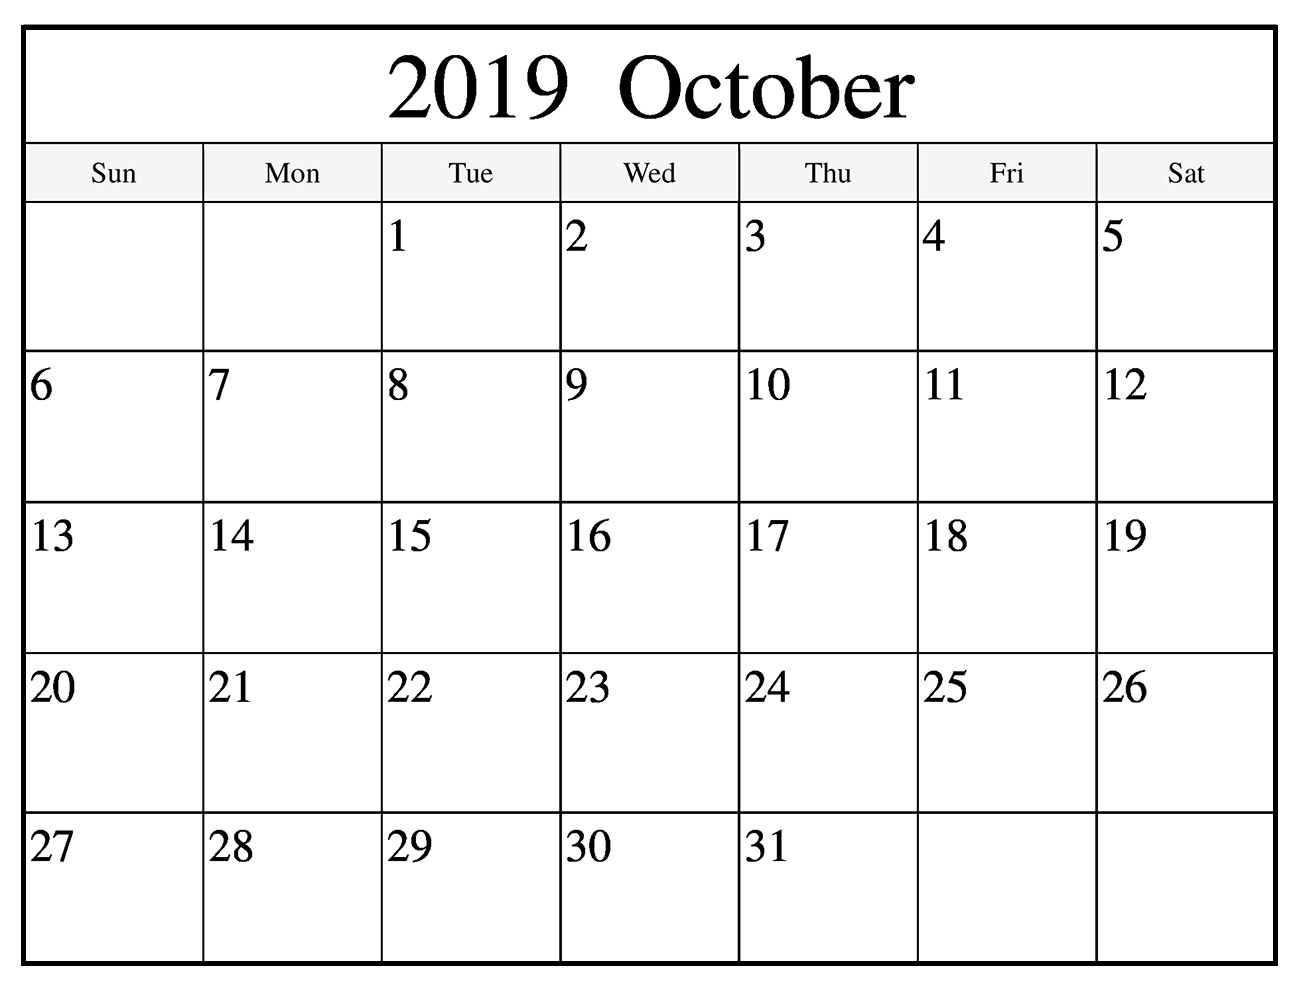 October 2019 Printable Calendar Template with Notes